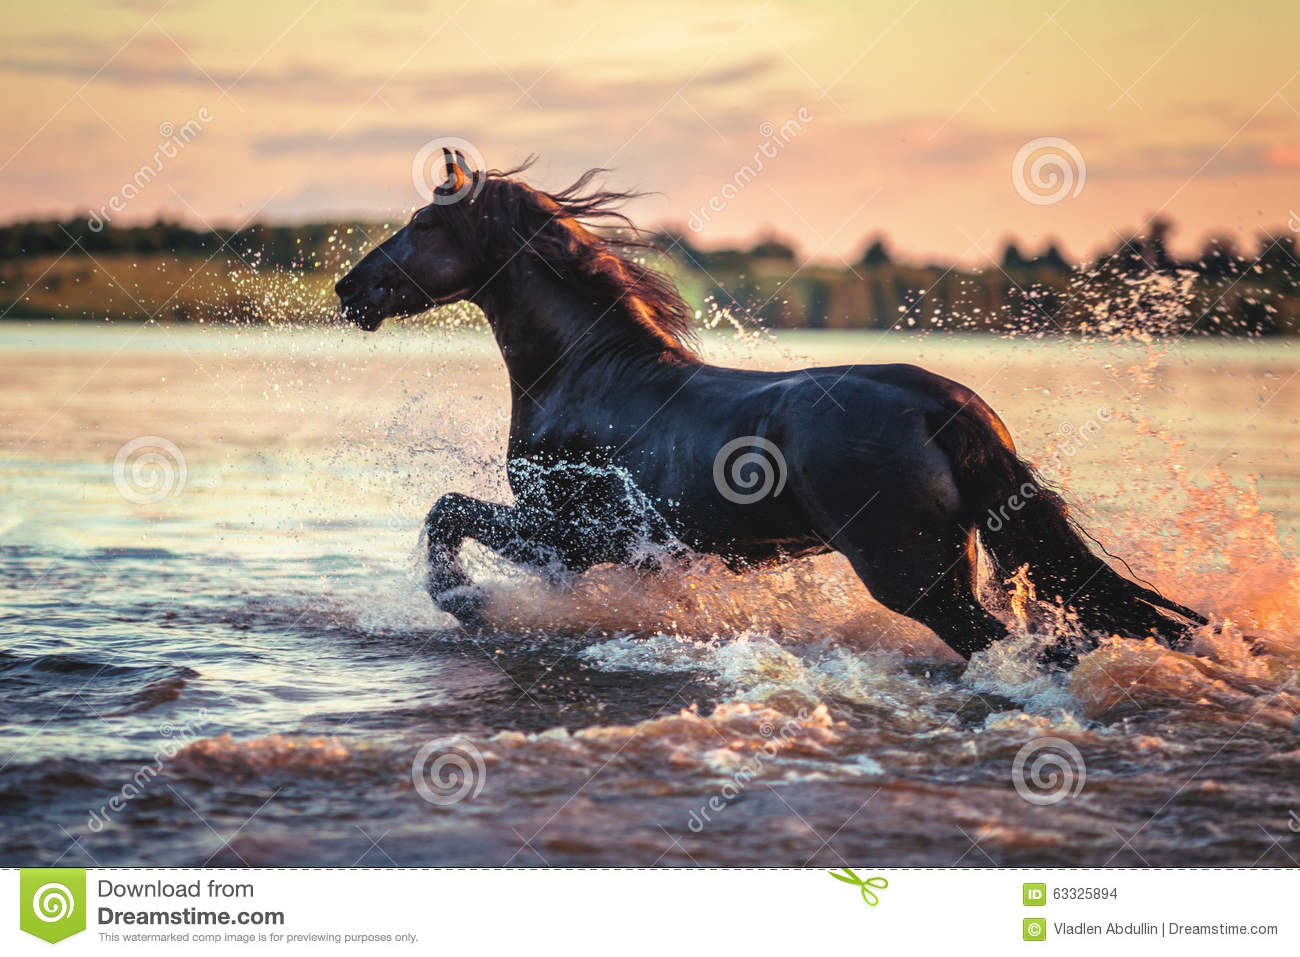 1 901 Horse Running Water Photos Free Royalty Free Stock Photos From Dreamstime